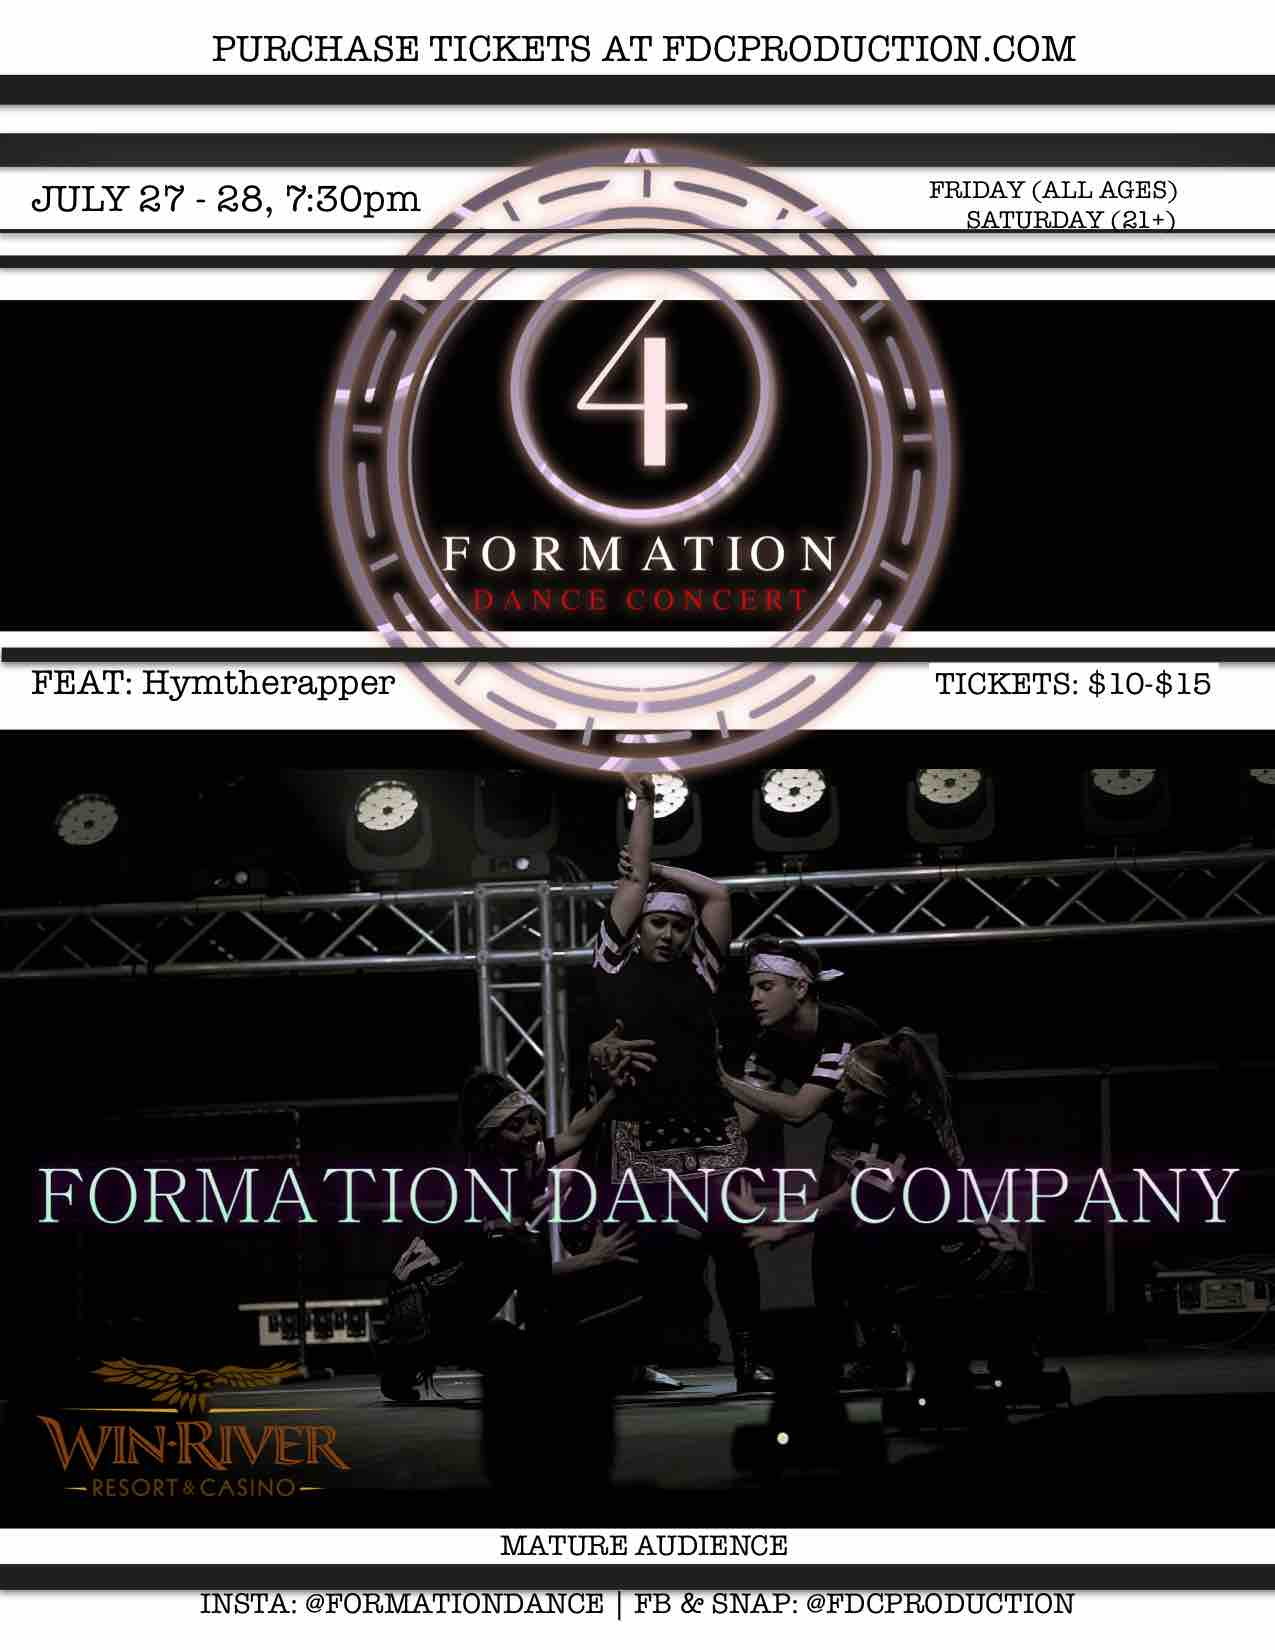 The Formation Dance Concert